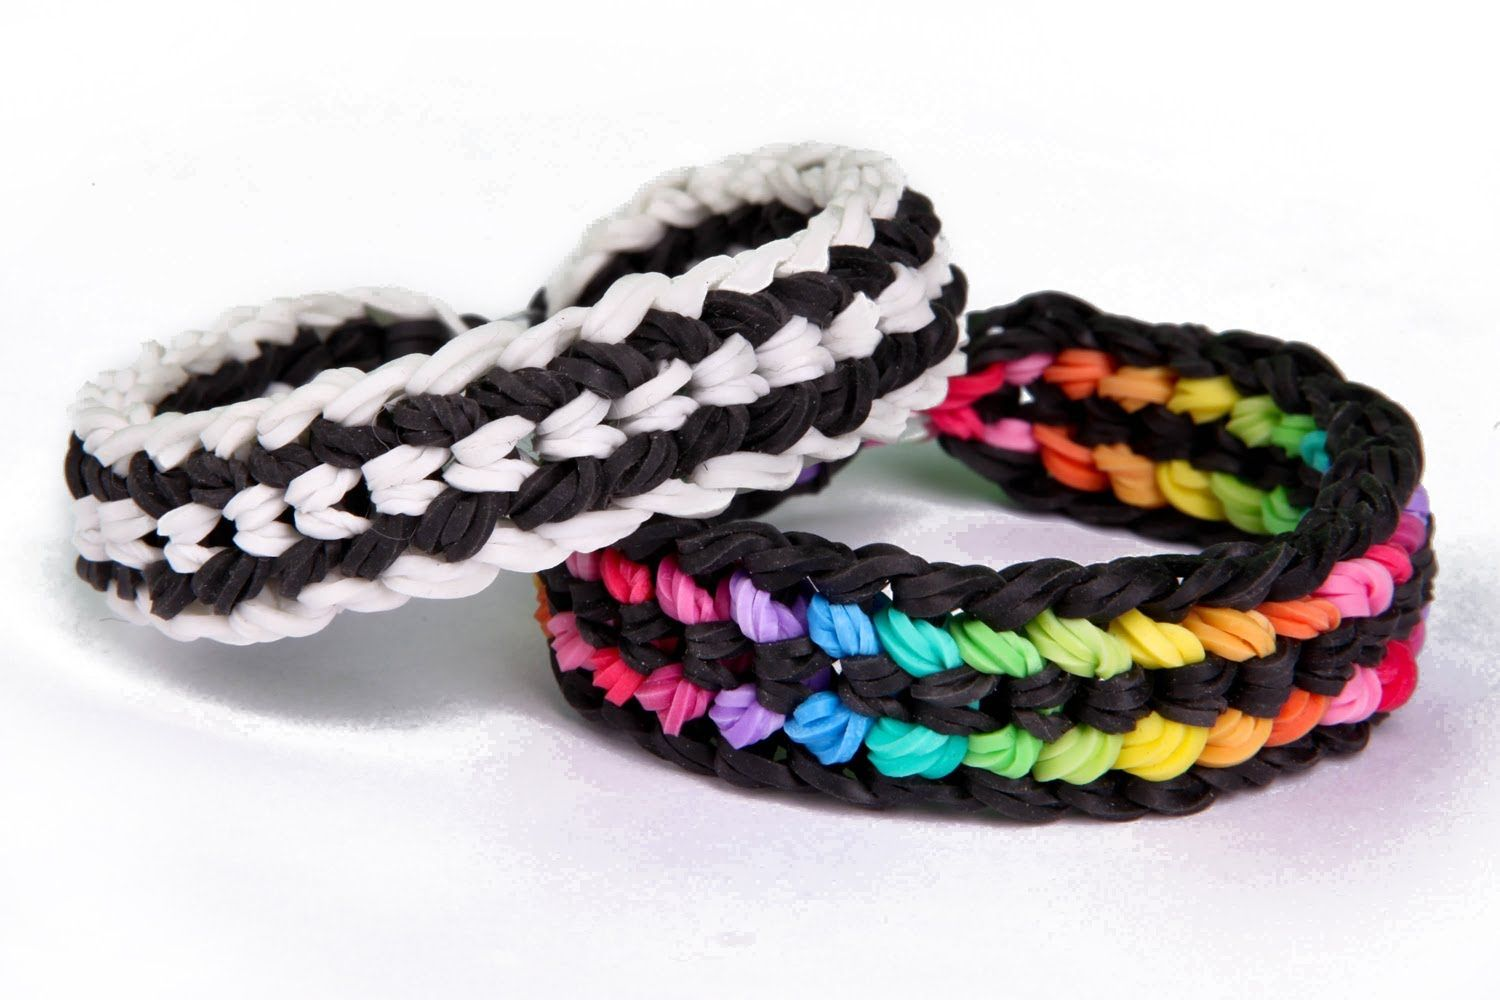 rainbow loom double capped dragon scale advanced bracelet rainbow loom ideas rainbow loom. Black Bedroom Furniture Sets. Home Design Ideas